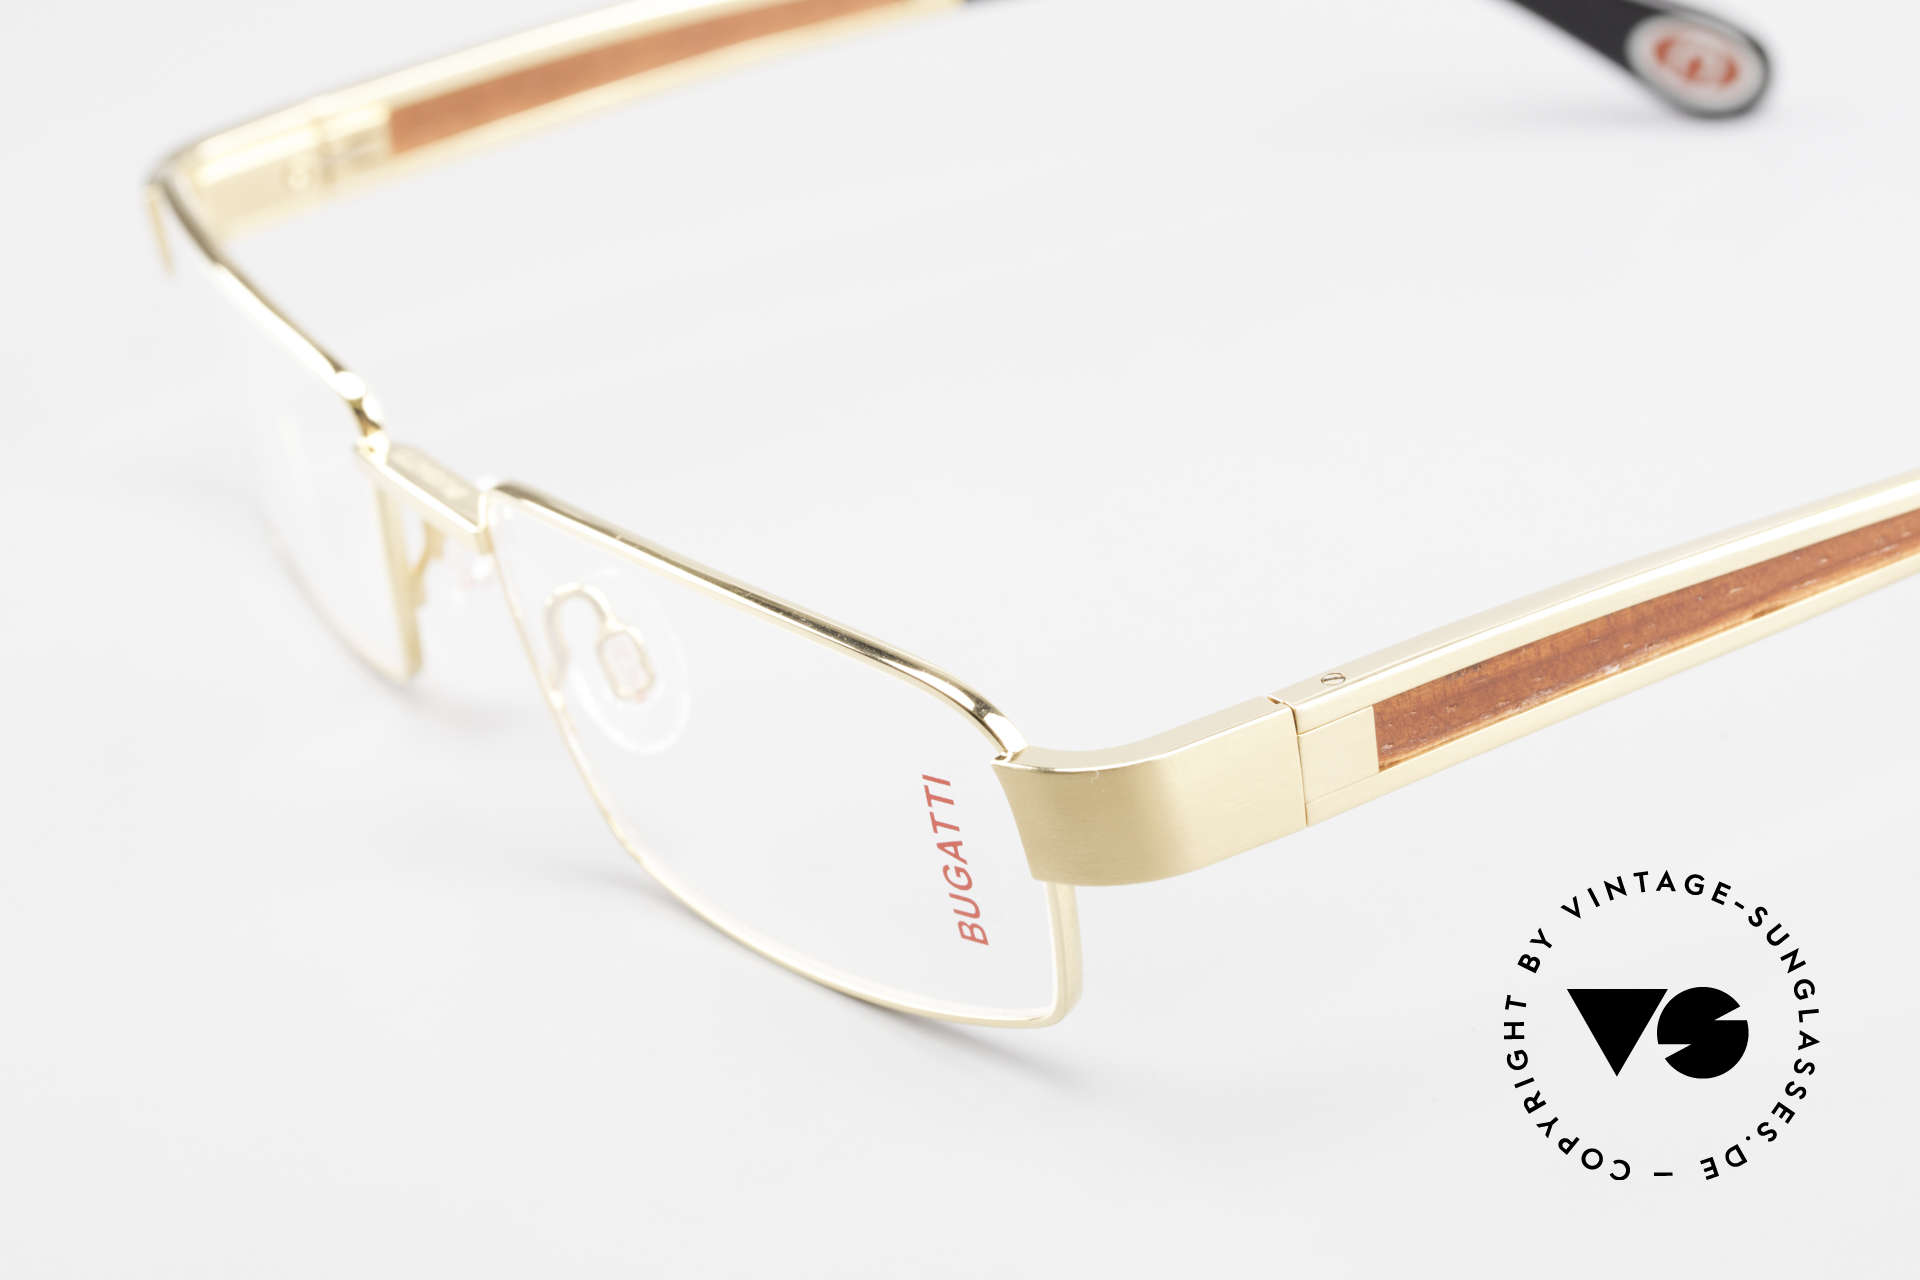 Bugatti 522 Padouk Precious Wood Gold, this model is definitely at the top of the eyewear sector, Made for Men